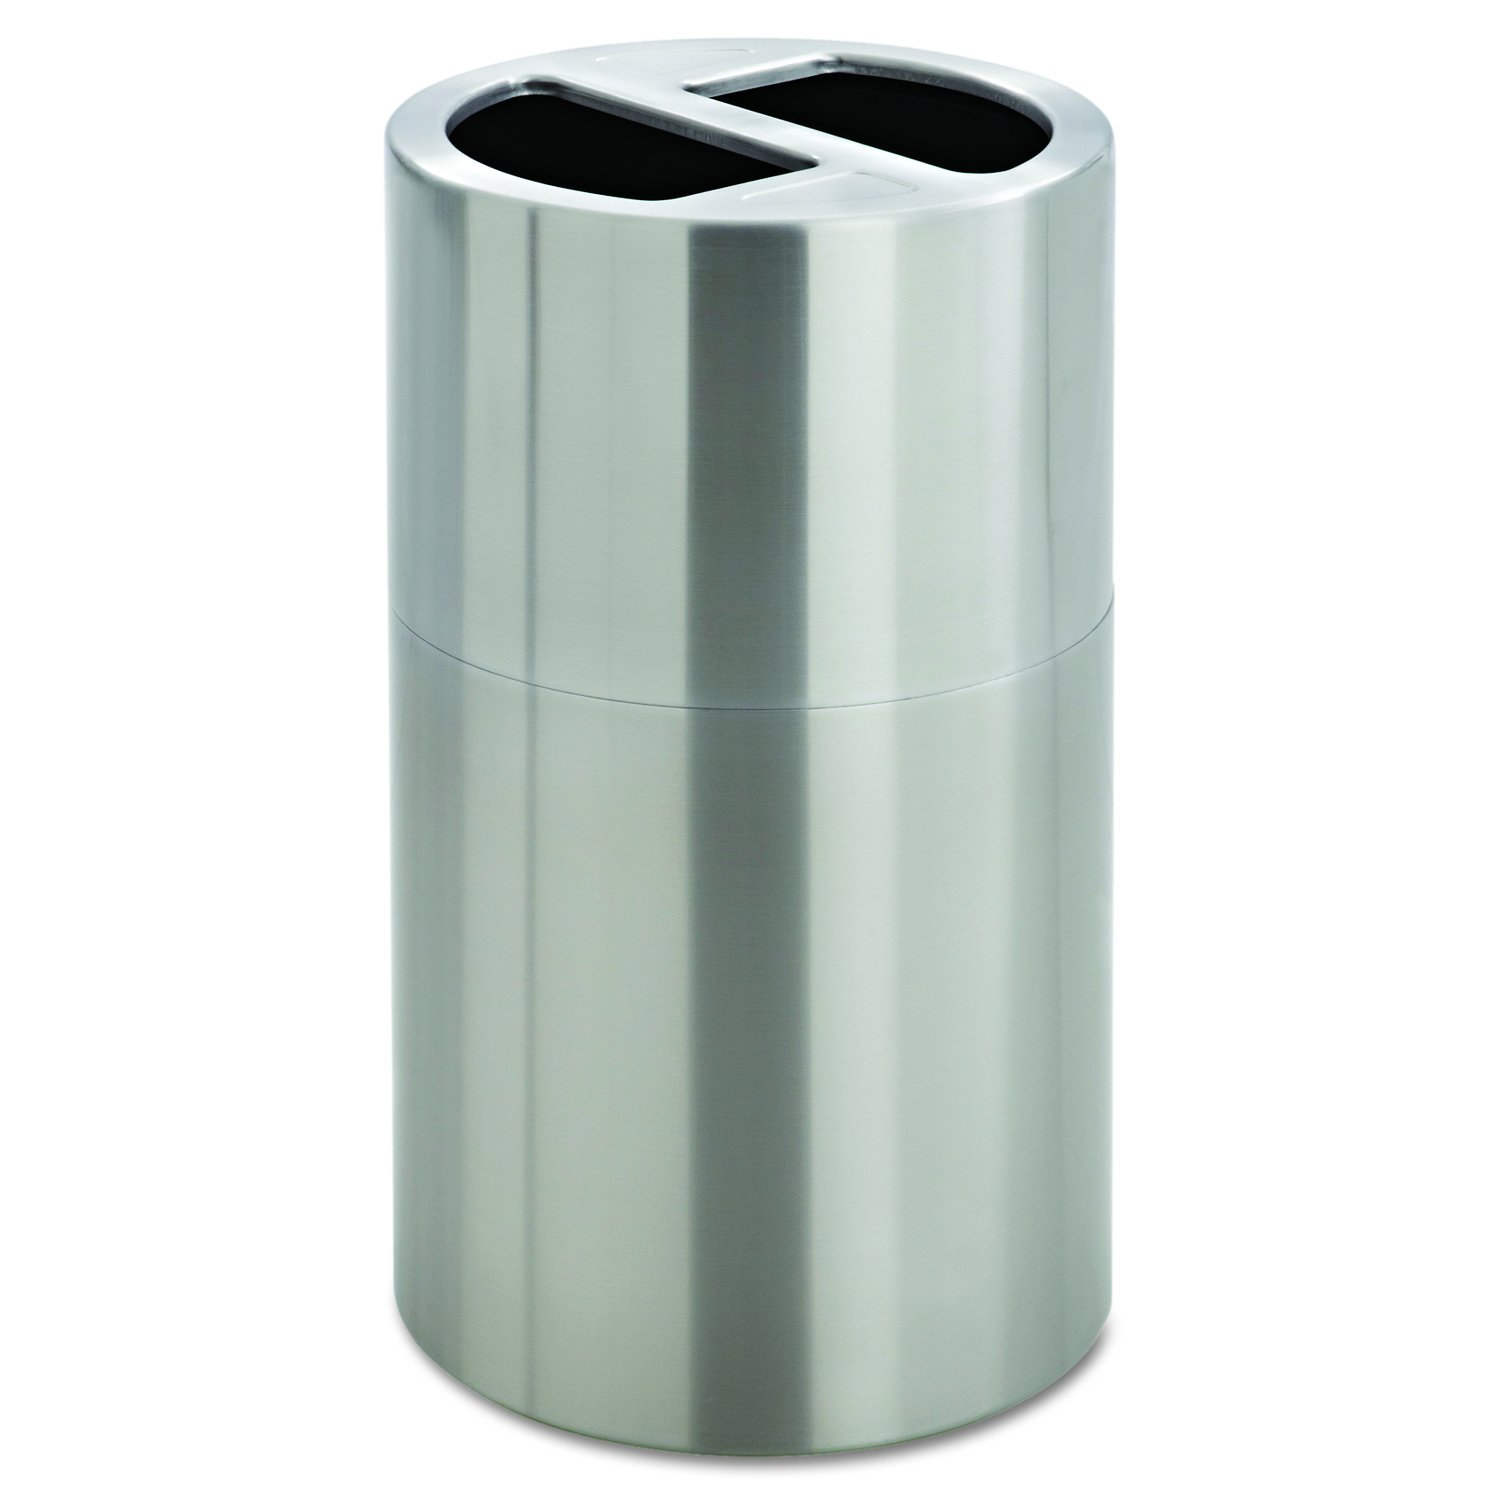 Safco Products 9931SS Dual Bin Waste Recycling Receptacle, Silver